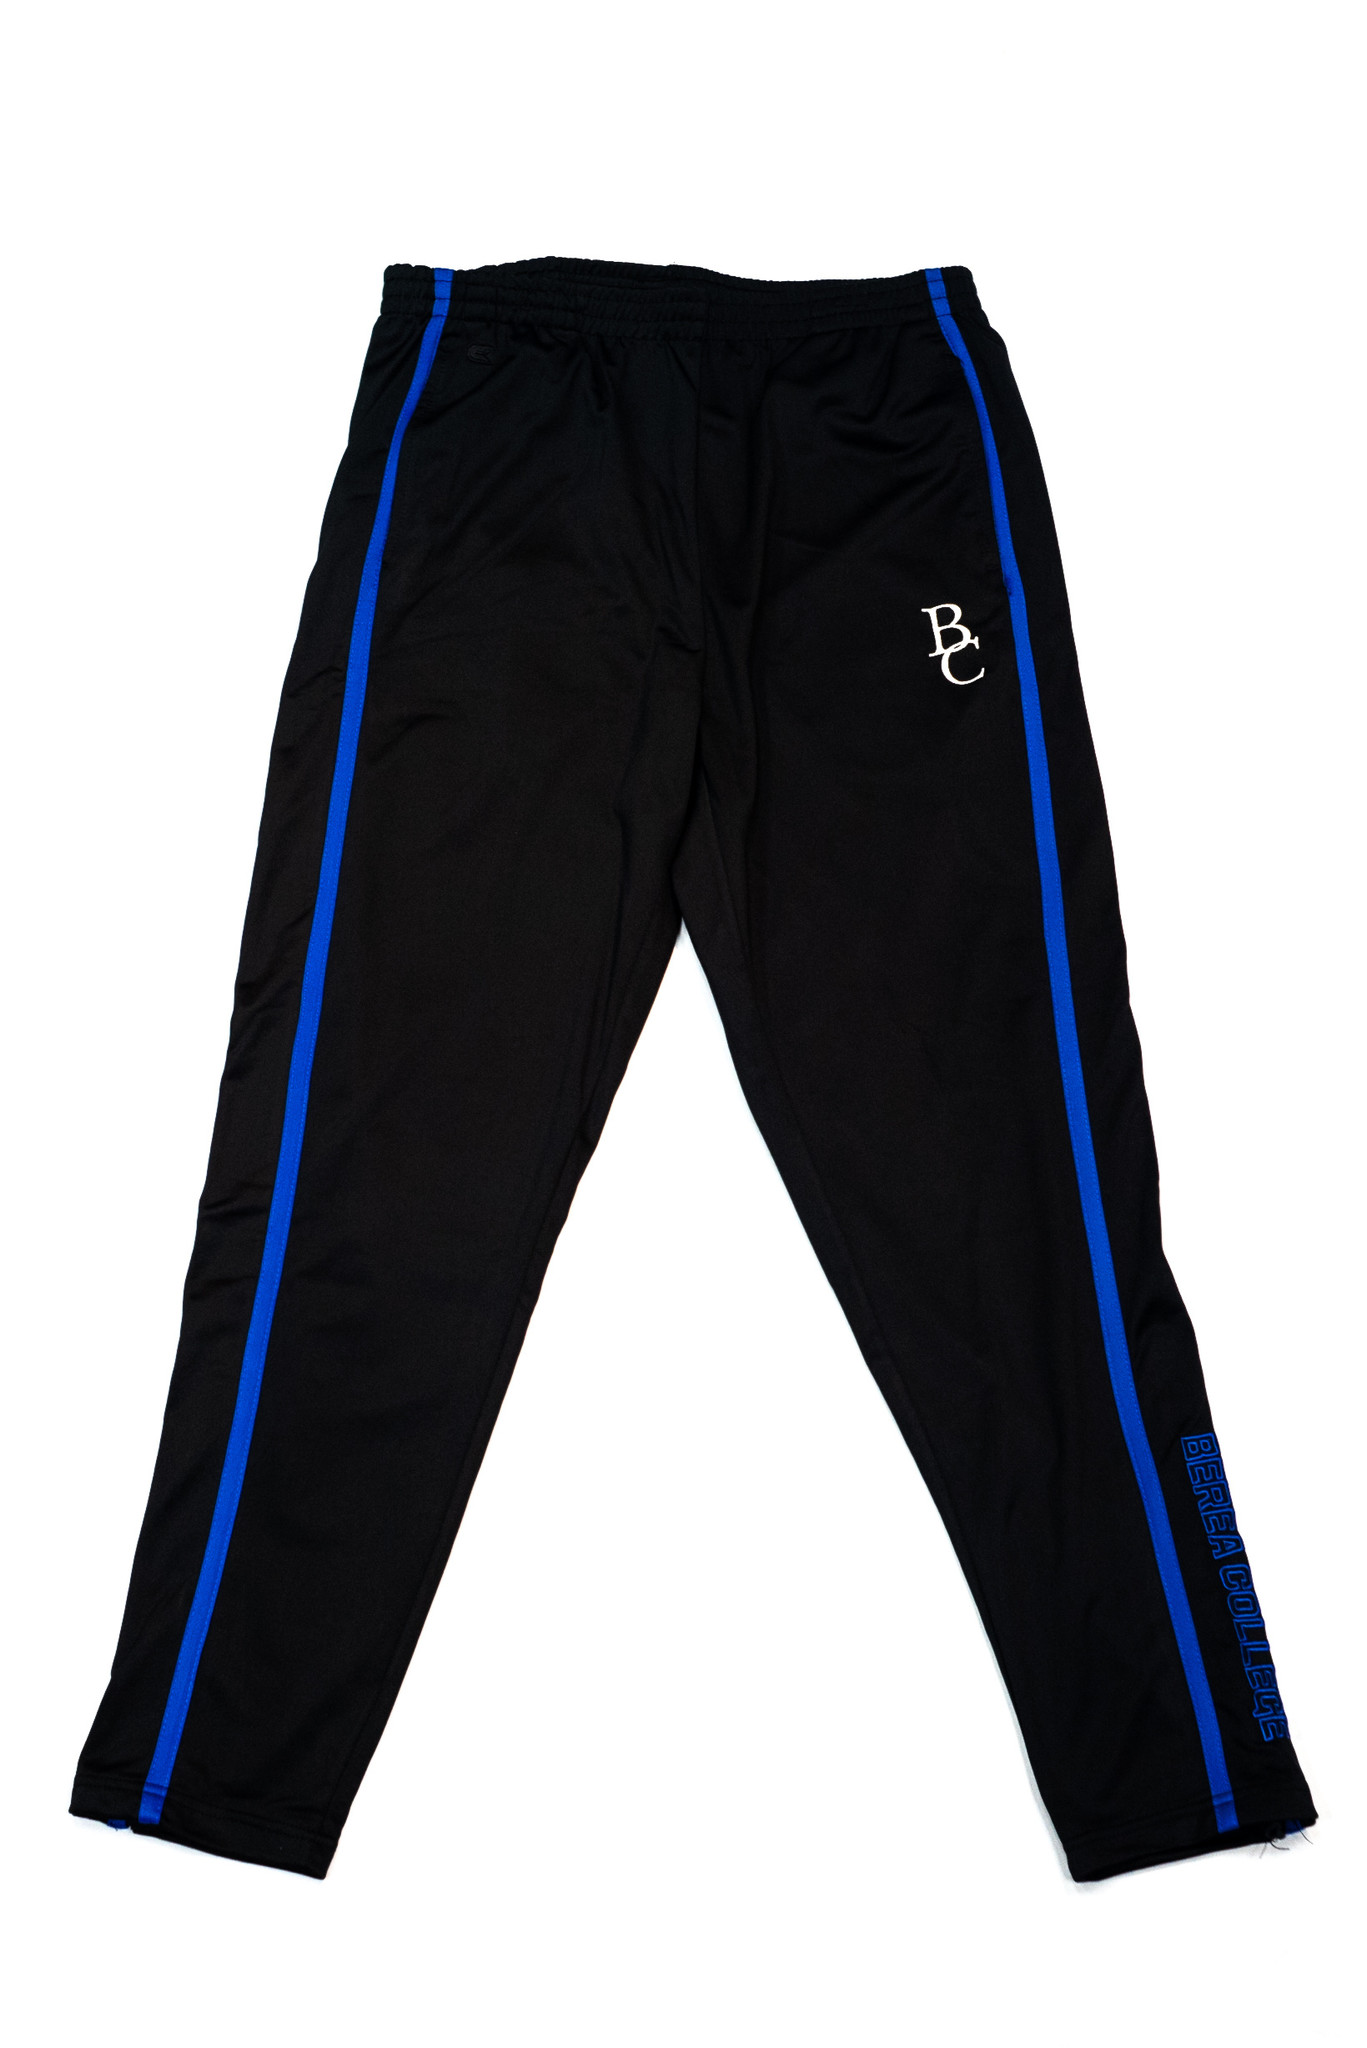 Black BC Sweatpants-1